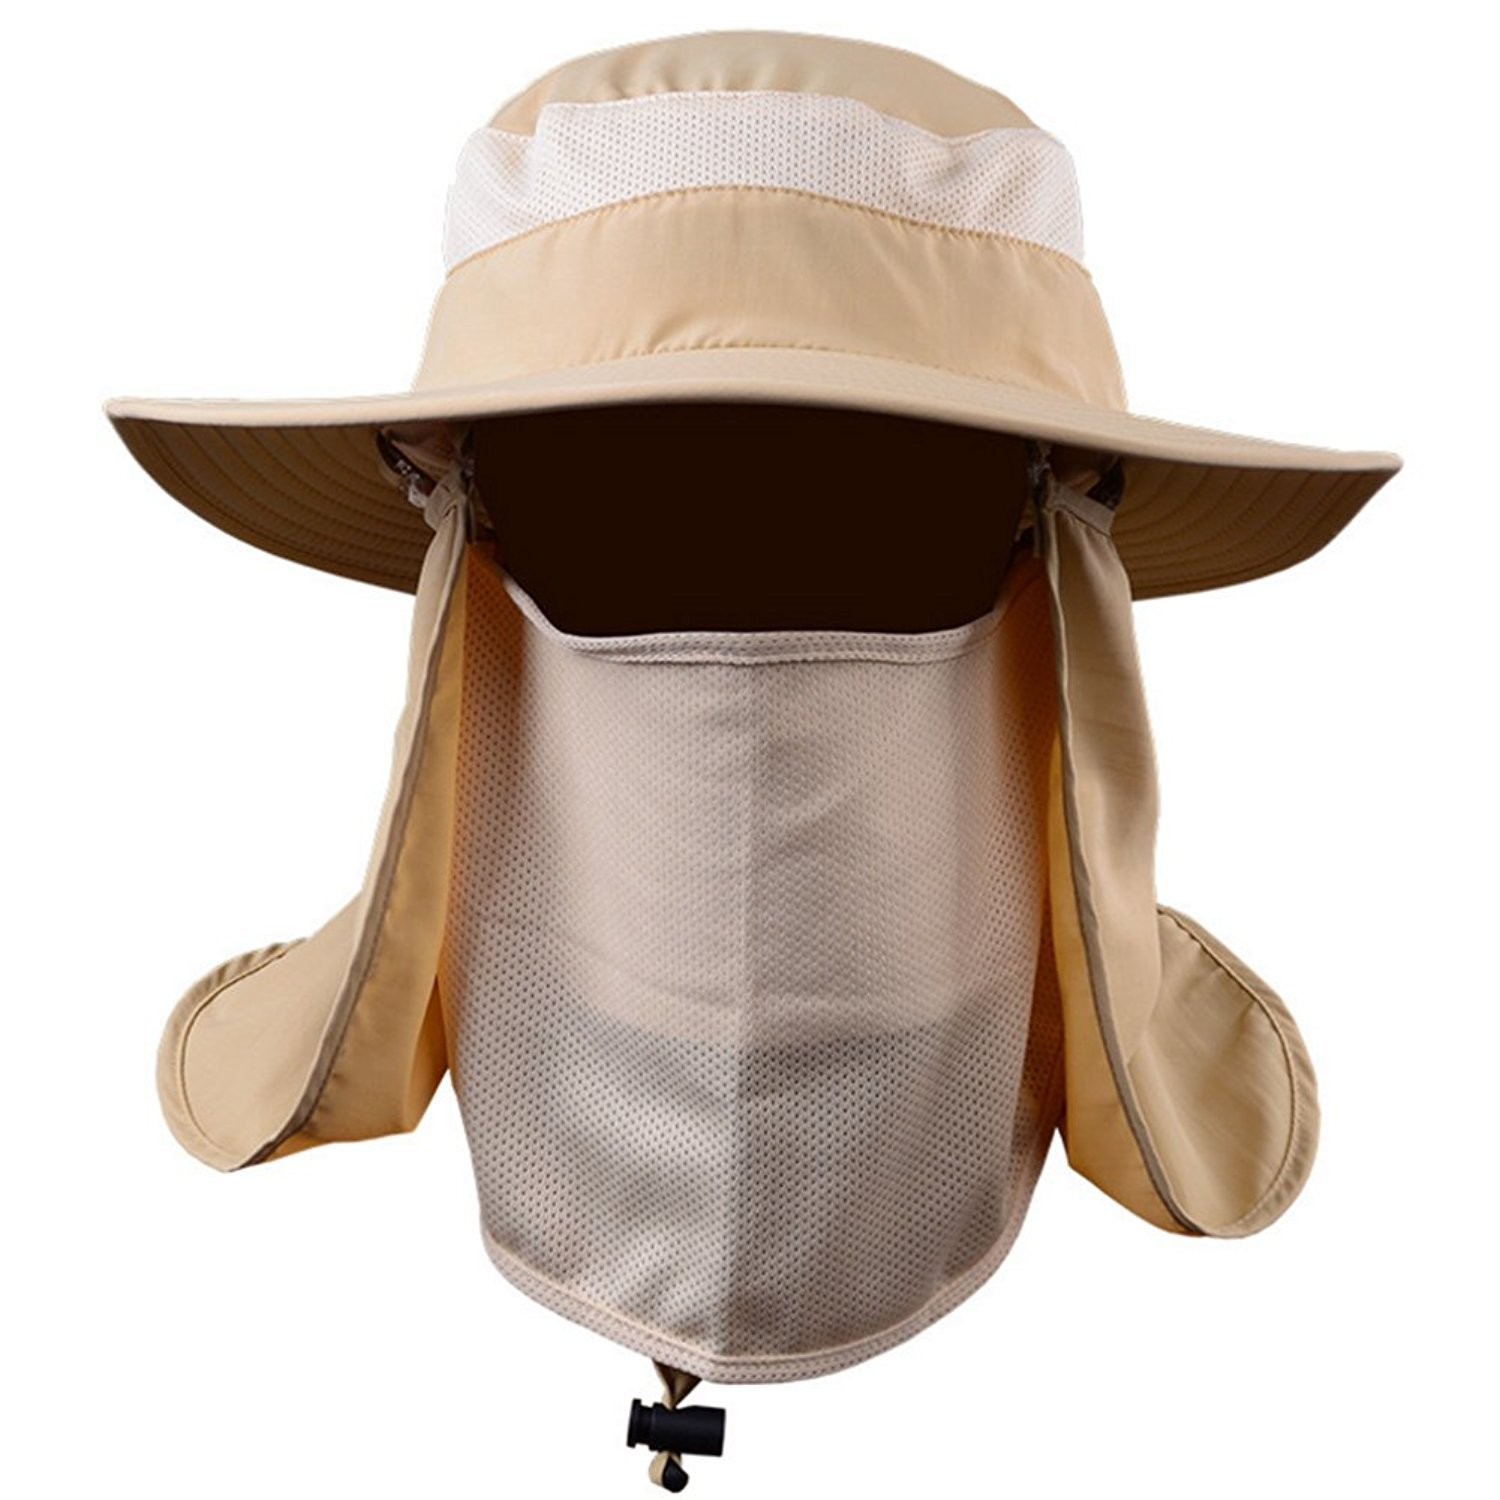 d81d1d58a3d Mens Outdoor Legionnaire Hat Camping Fishing Hunting Fully Sun Protection Hat  Cap with Flap Neck Protector Detachable Mesh Mouth Mask UPF 50+ Anti-UV  Summer ...